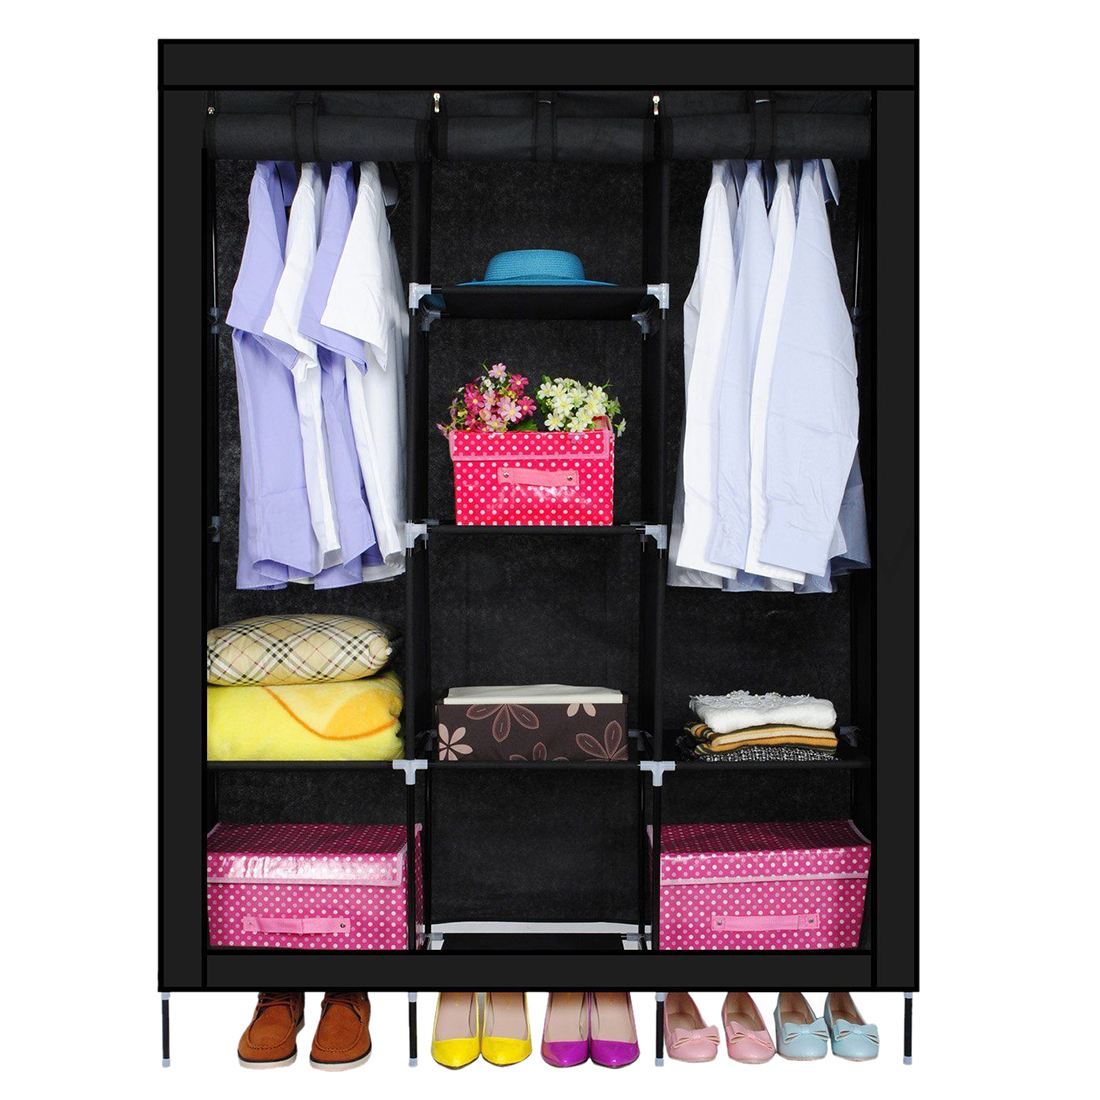 New triple nonwovens wardrobe home bedroom decor clothes clothing storage wardrobesblack